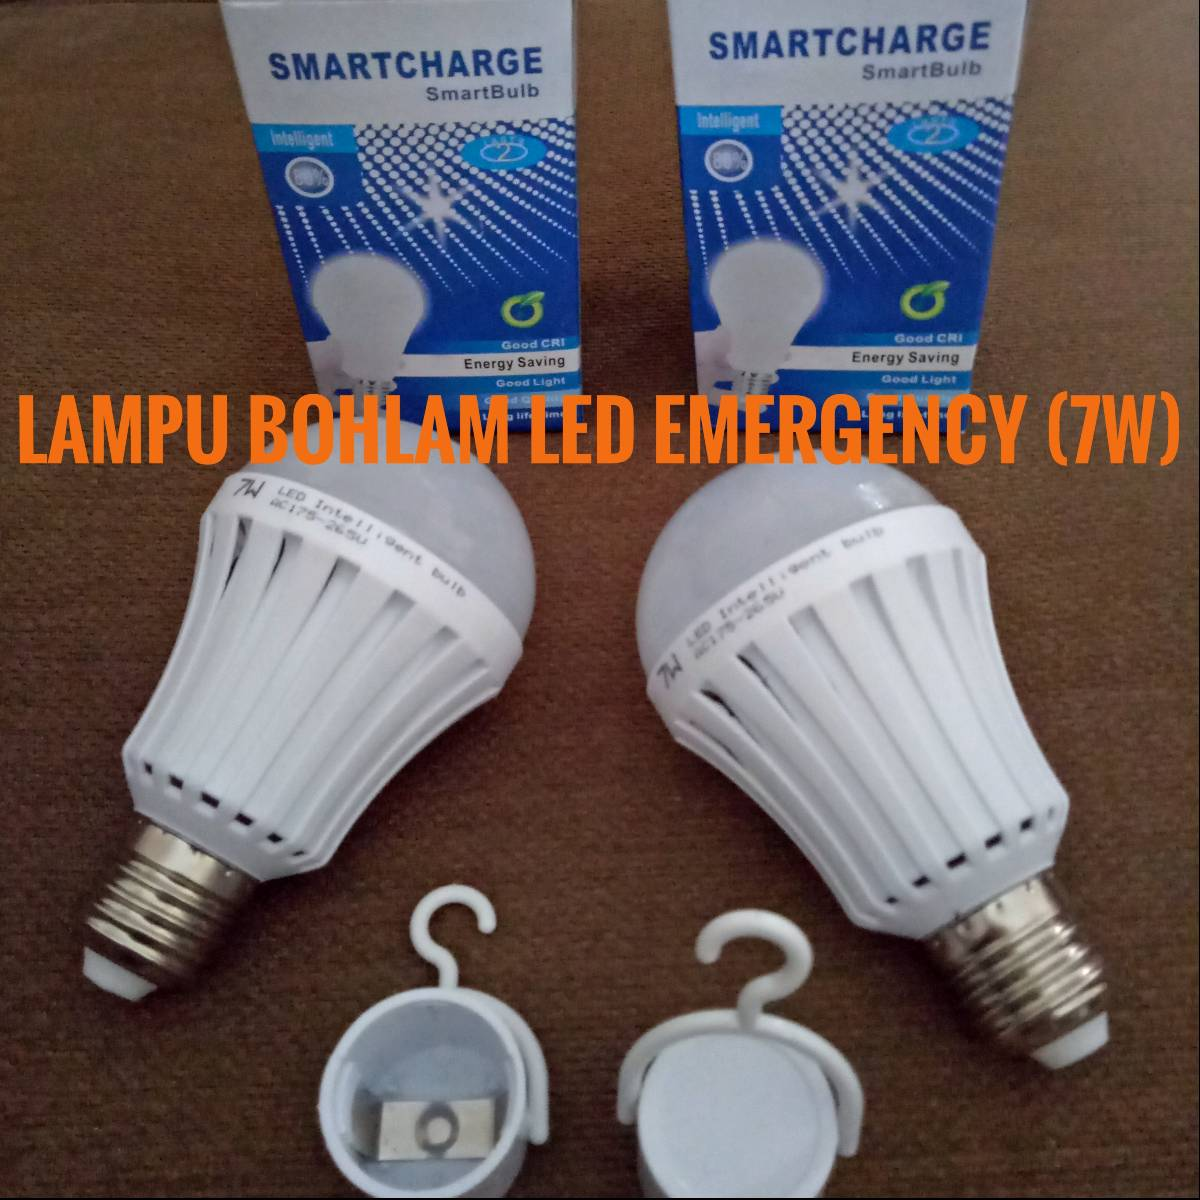 Lampu Bohlam Led Smartcharge (7w) - Lampu Emergency